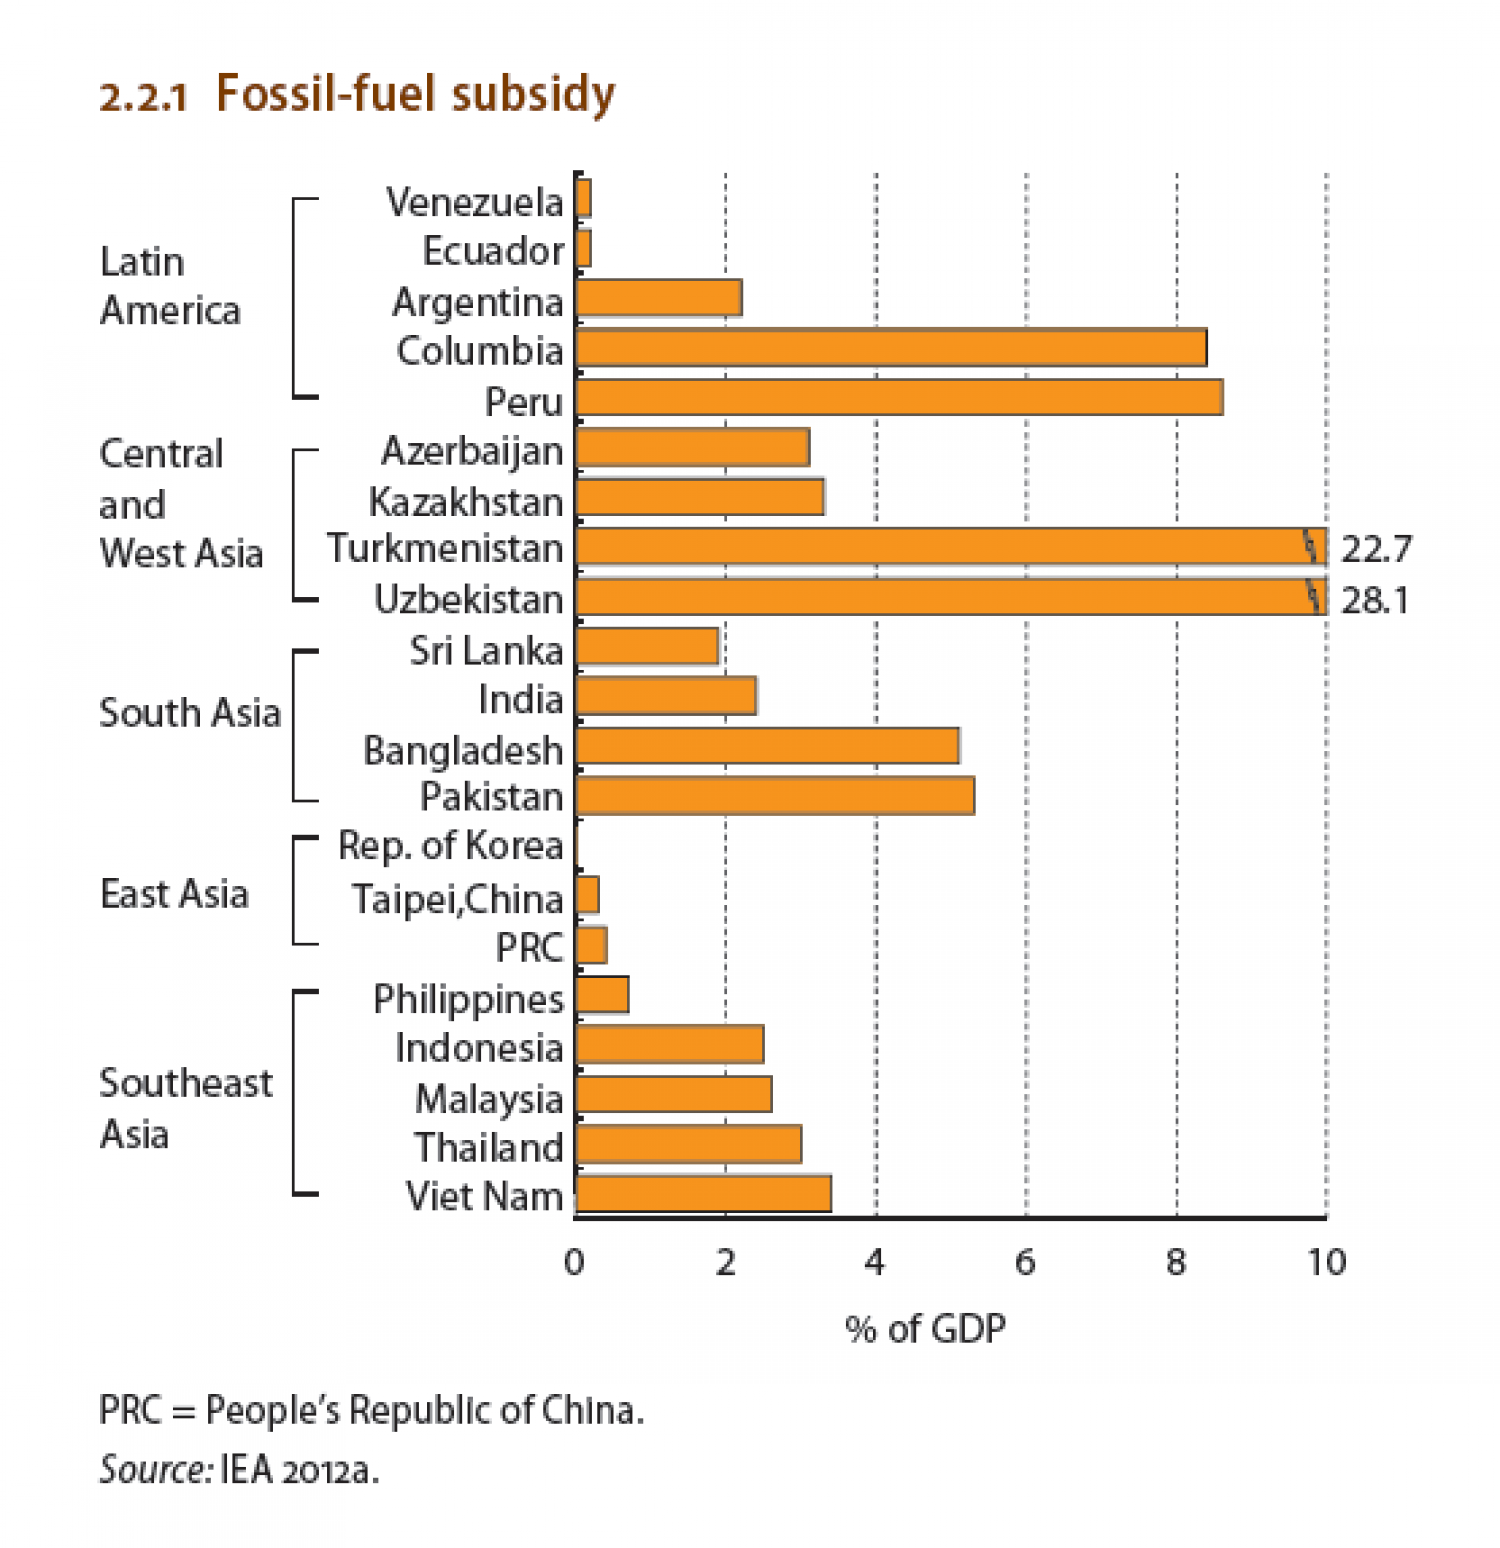 Fossil-fuel subsidy Infographic